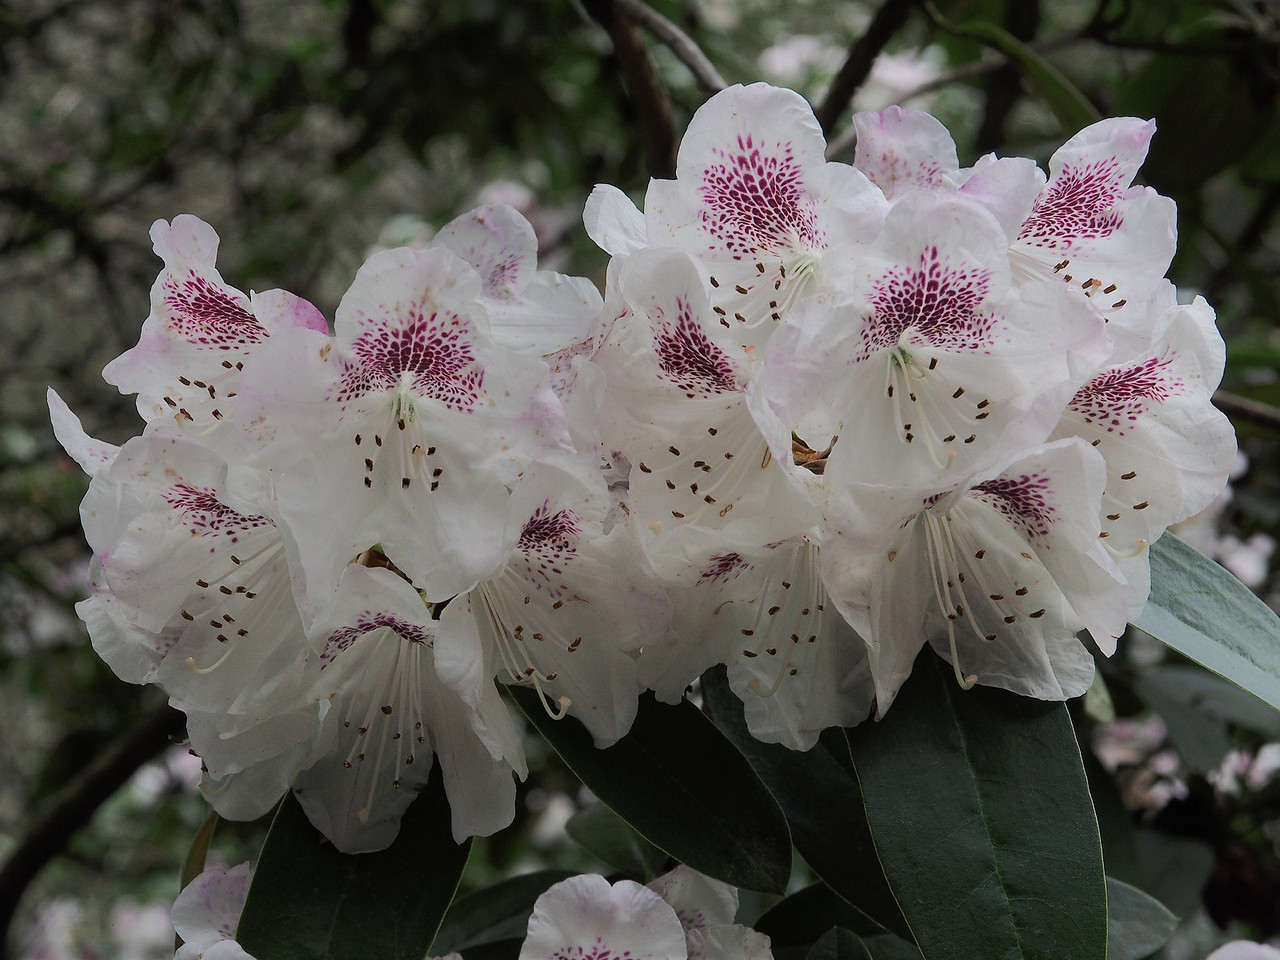 20130914_1513_2737 rhododendron